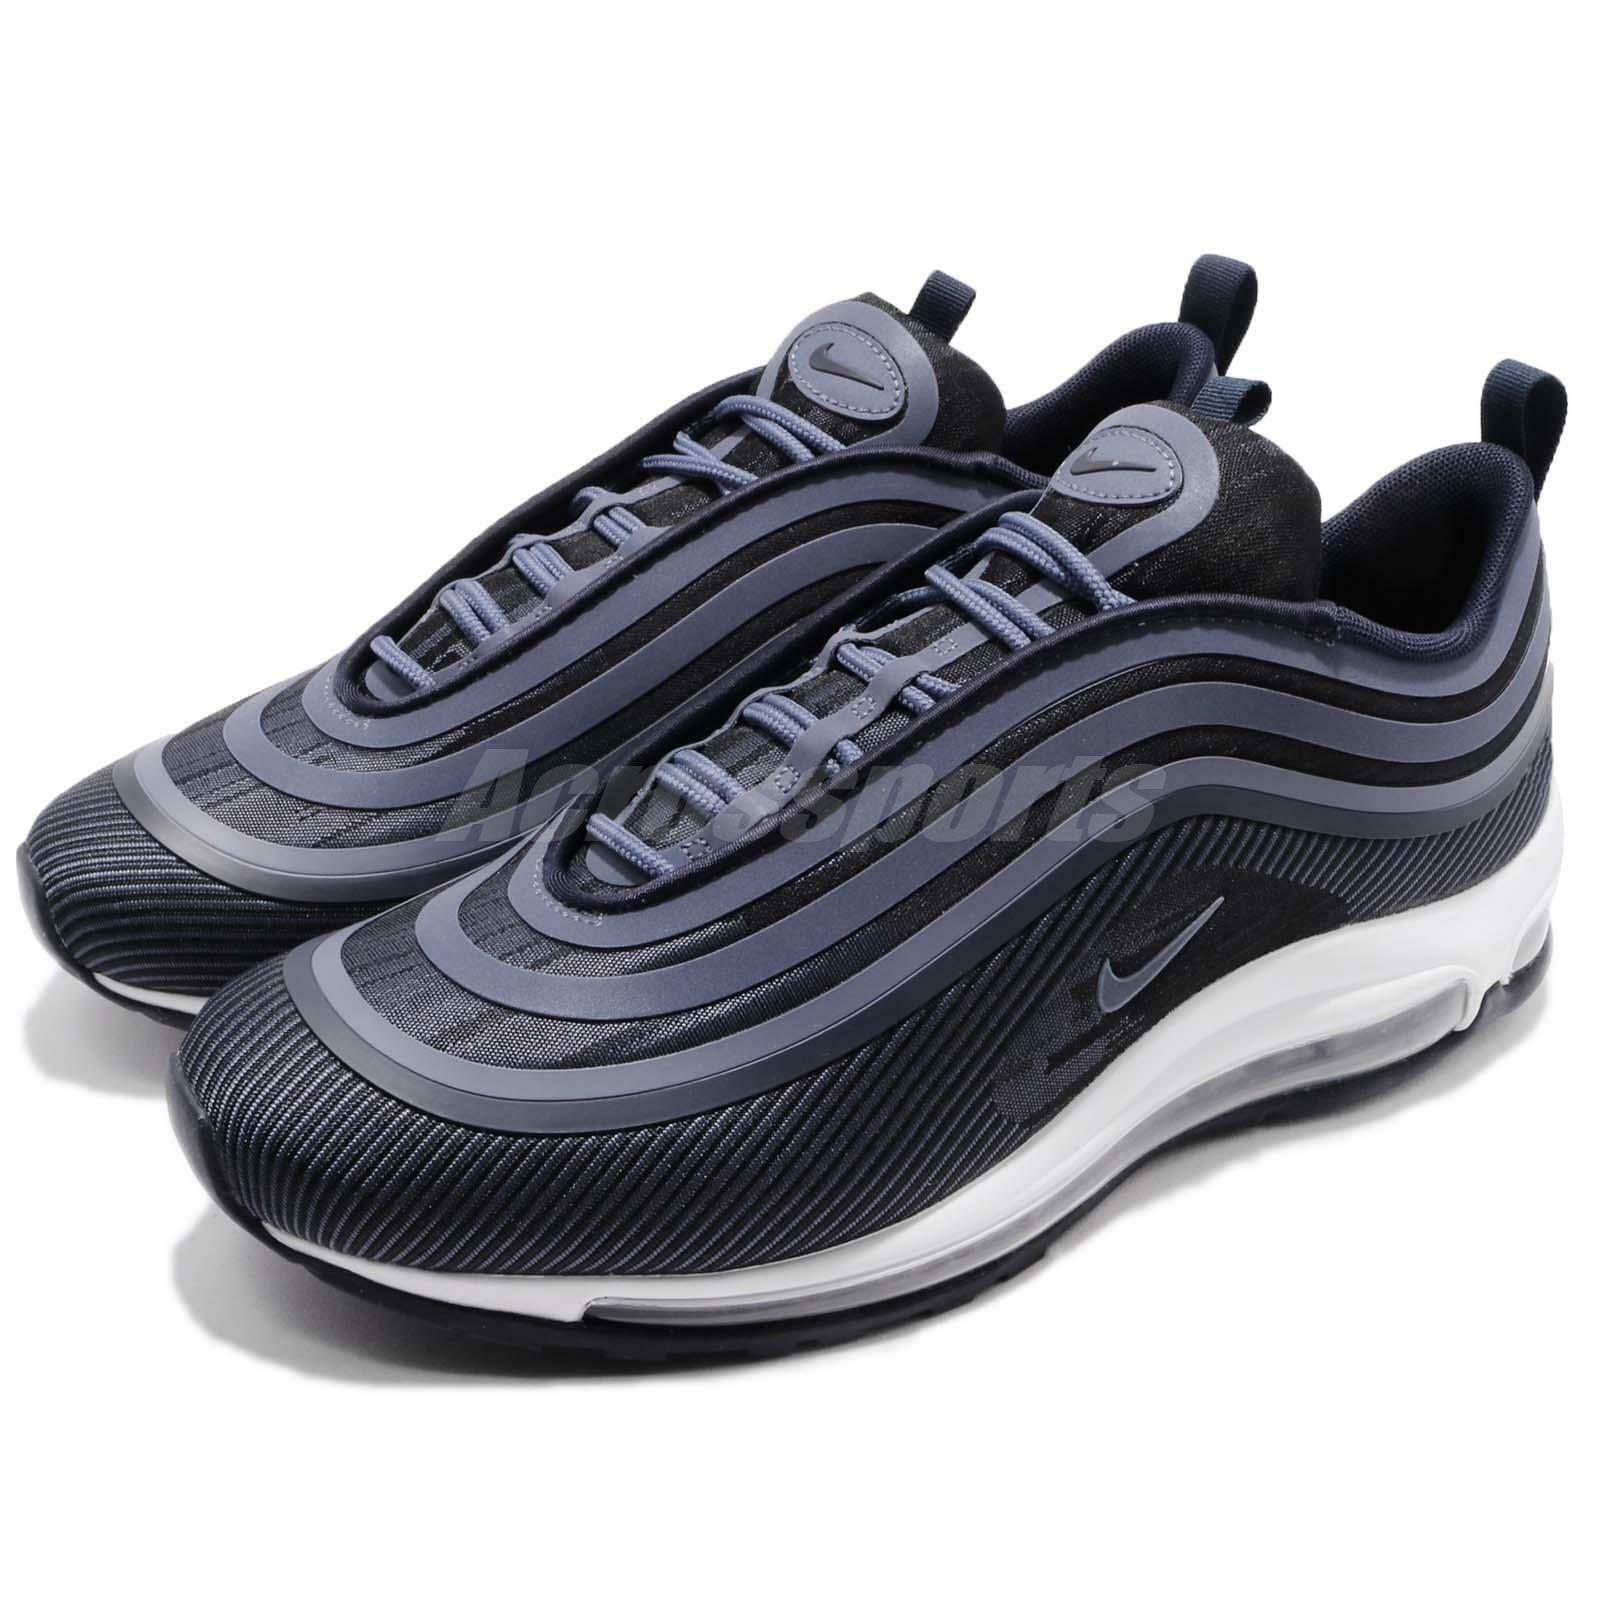 Nike Air Max 97 Ultra 17 Obsidian Navy Blue Men Running Shoes Sneaker 918356-404 Casual wild